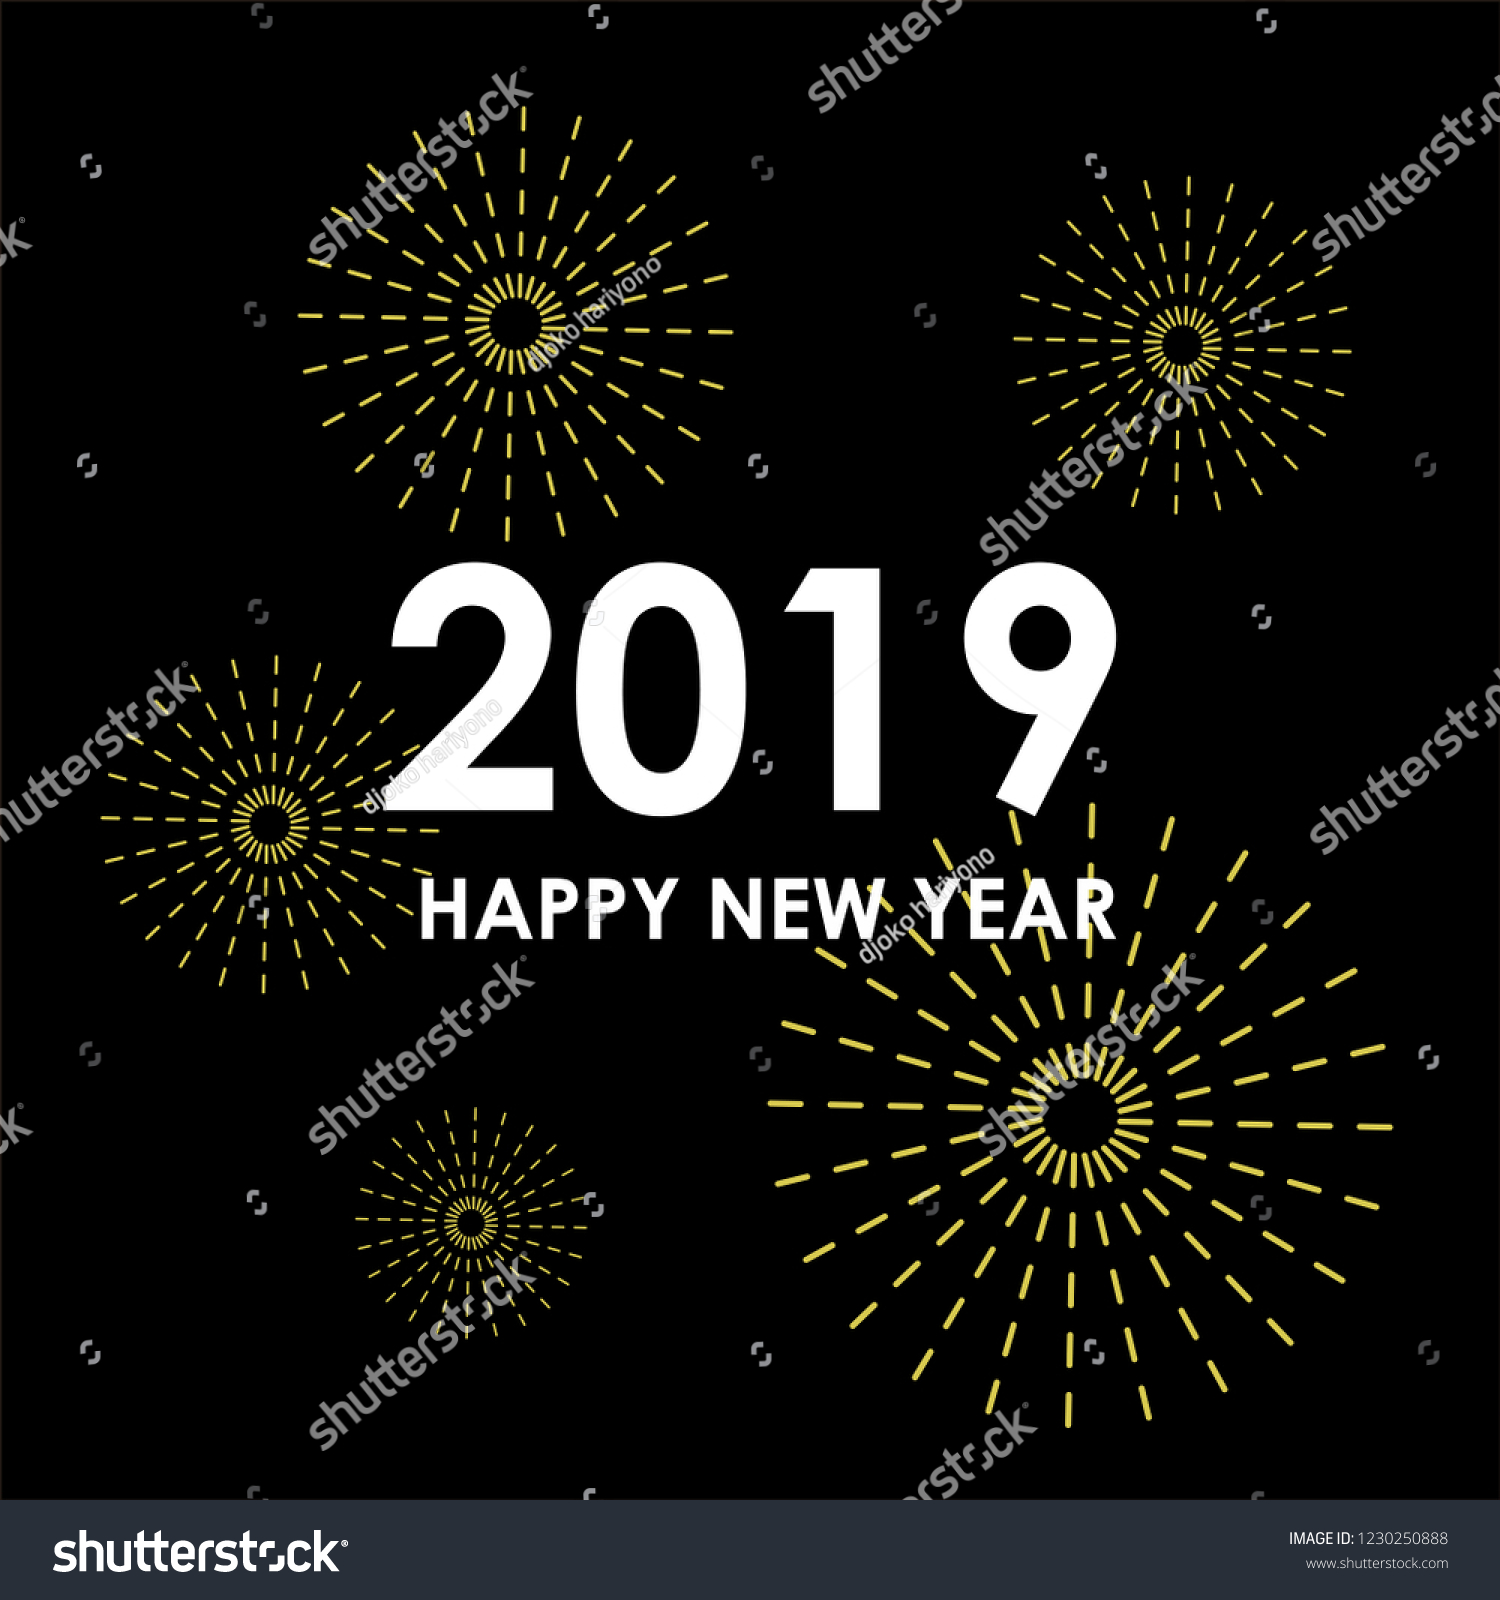 happy new year 2019 colorful wallpaper background party vector